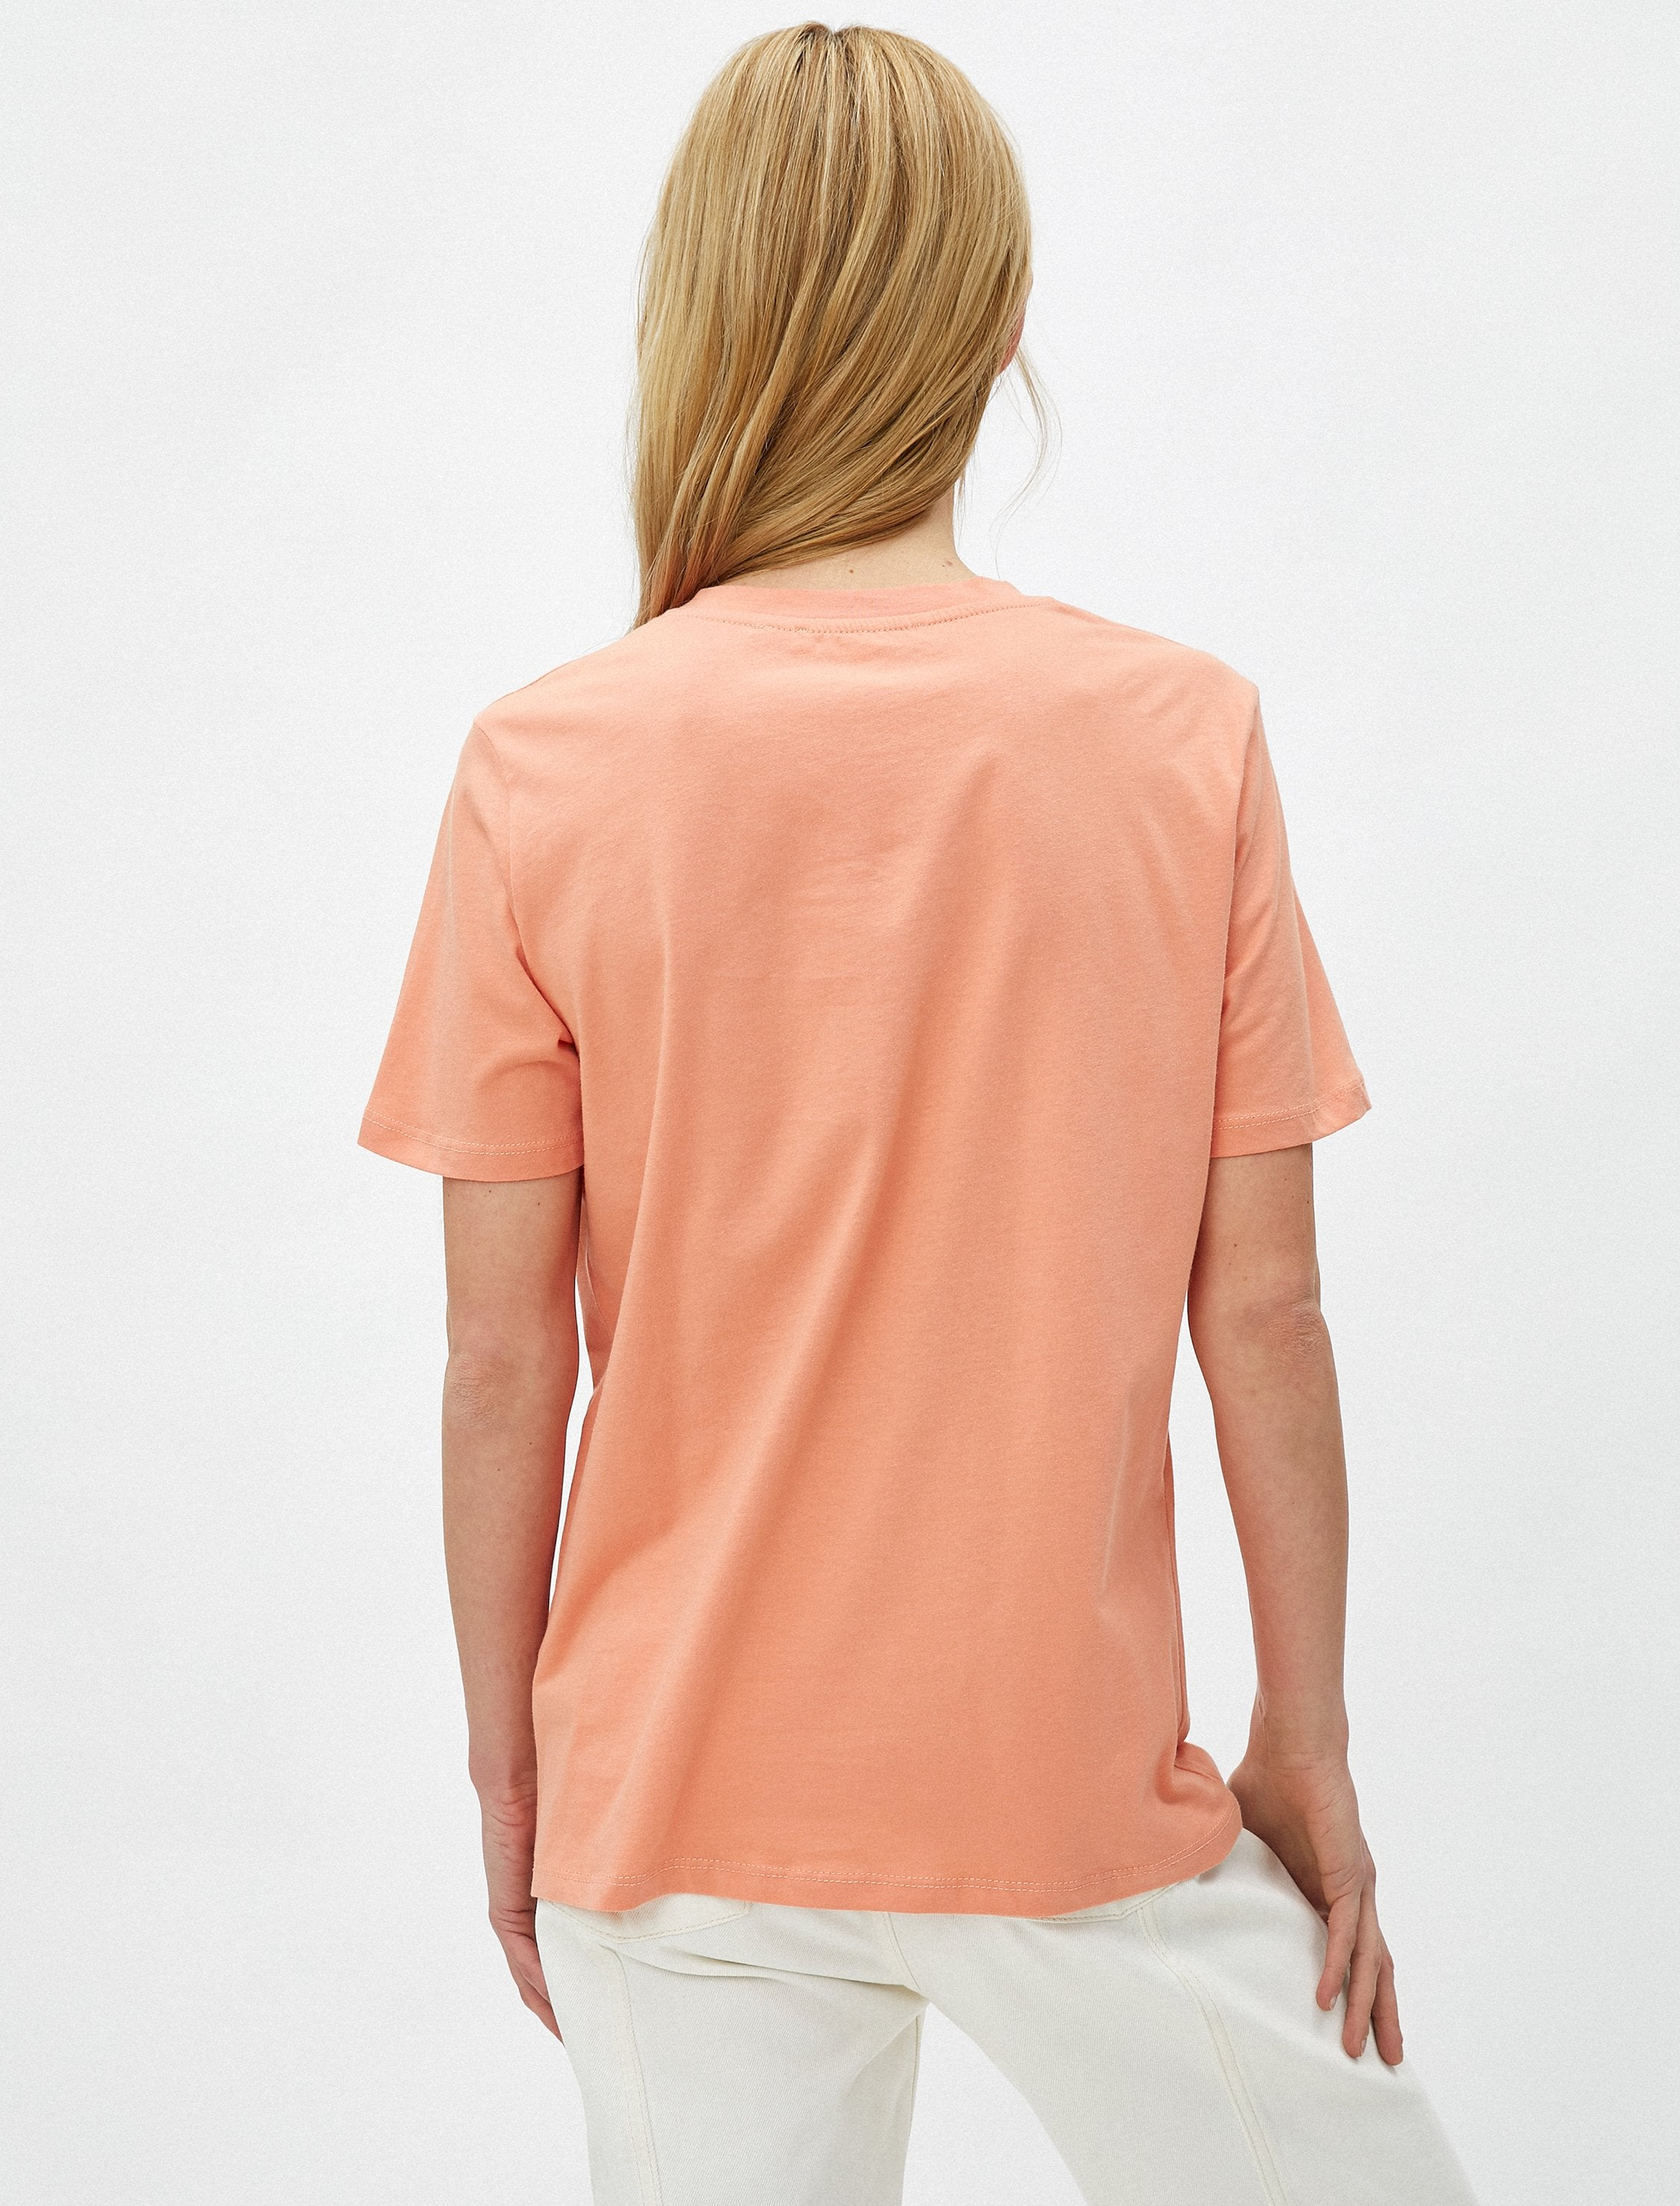 Mystery Woman Portrait Tshirt in Apricot